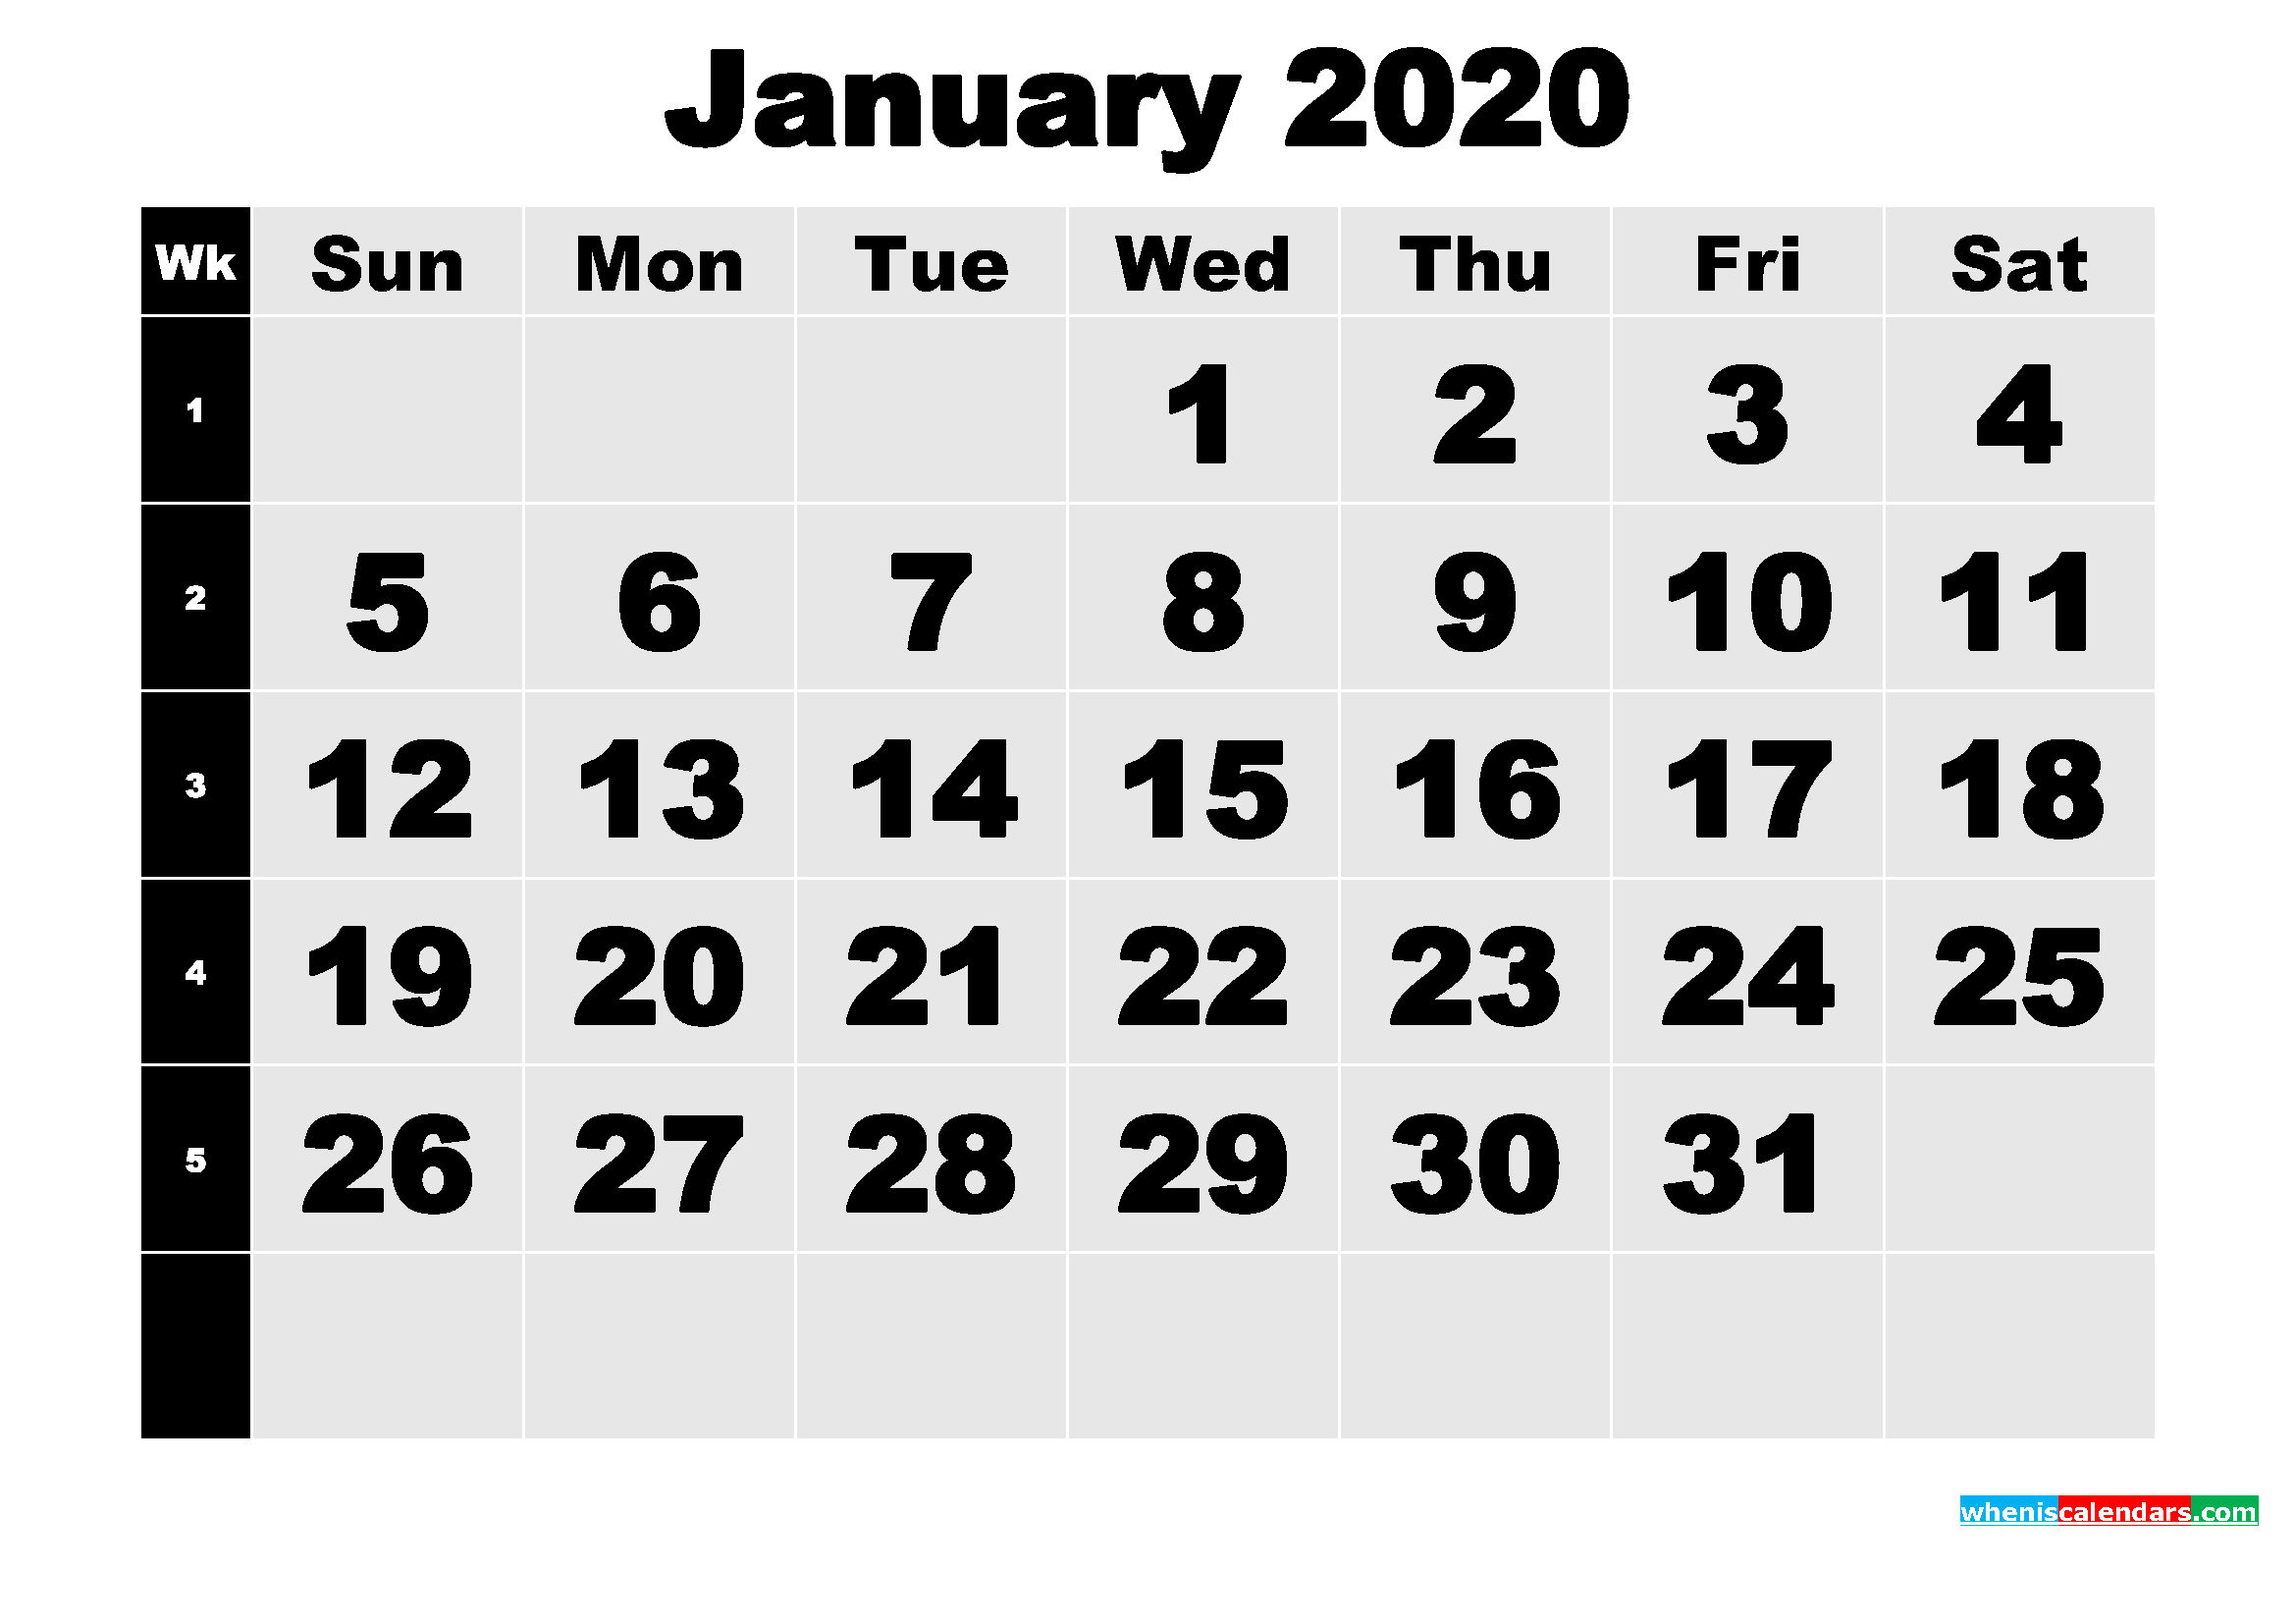 Free Printable January 2020 Calendar with Week Numbers